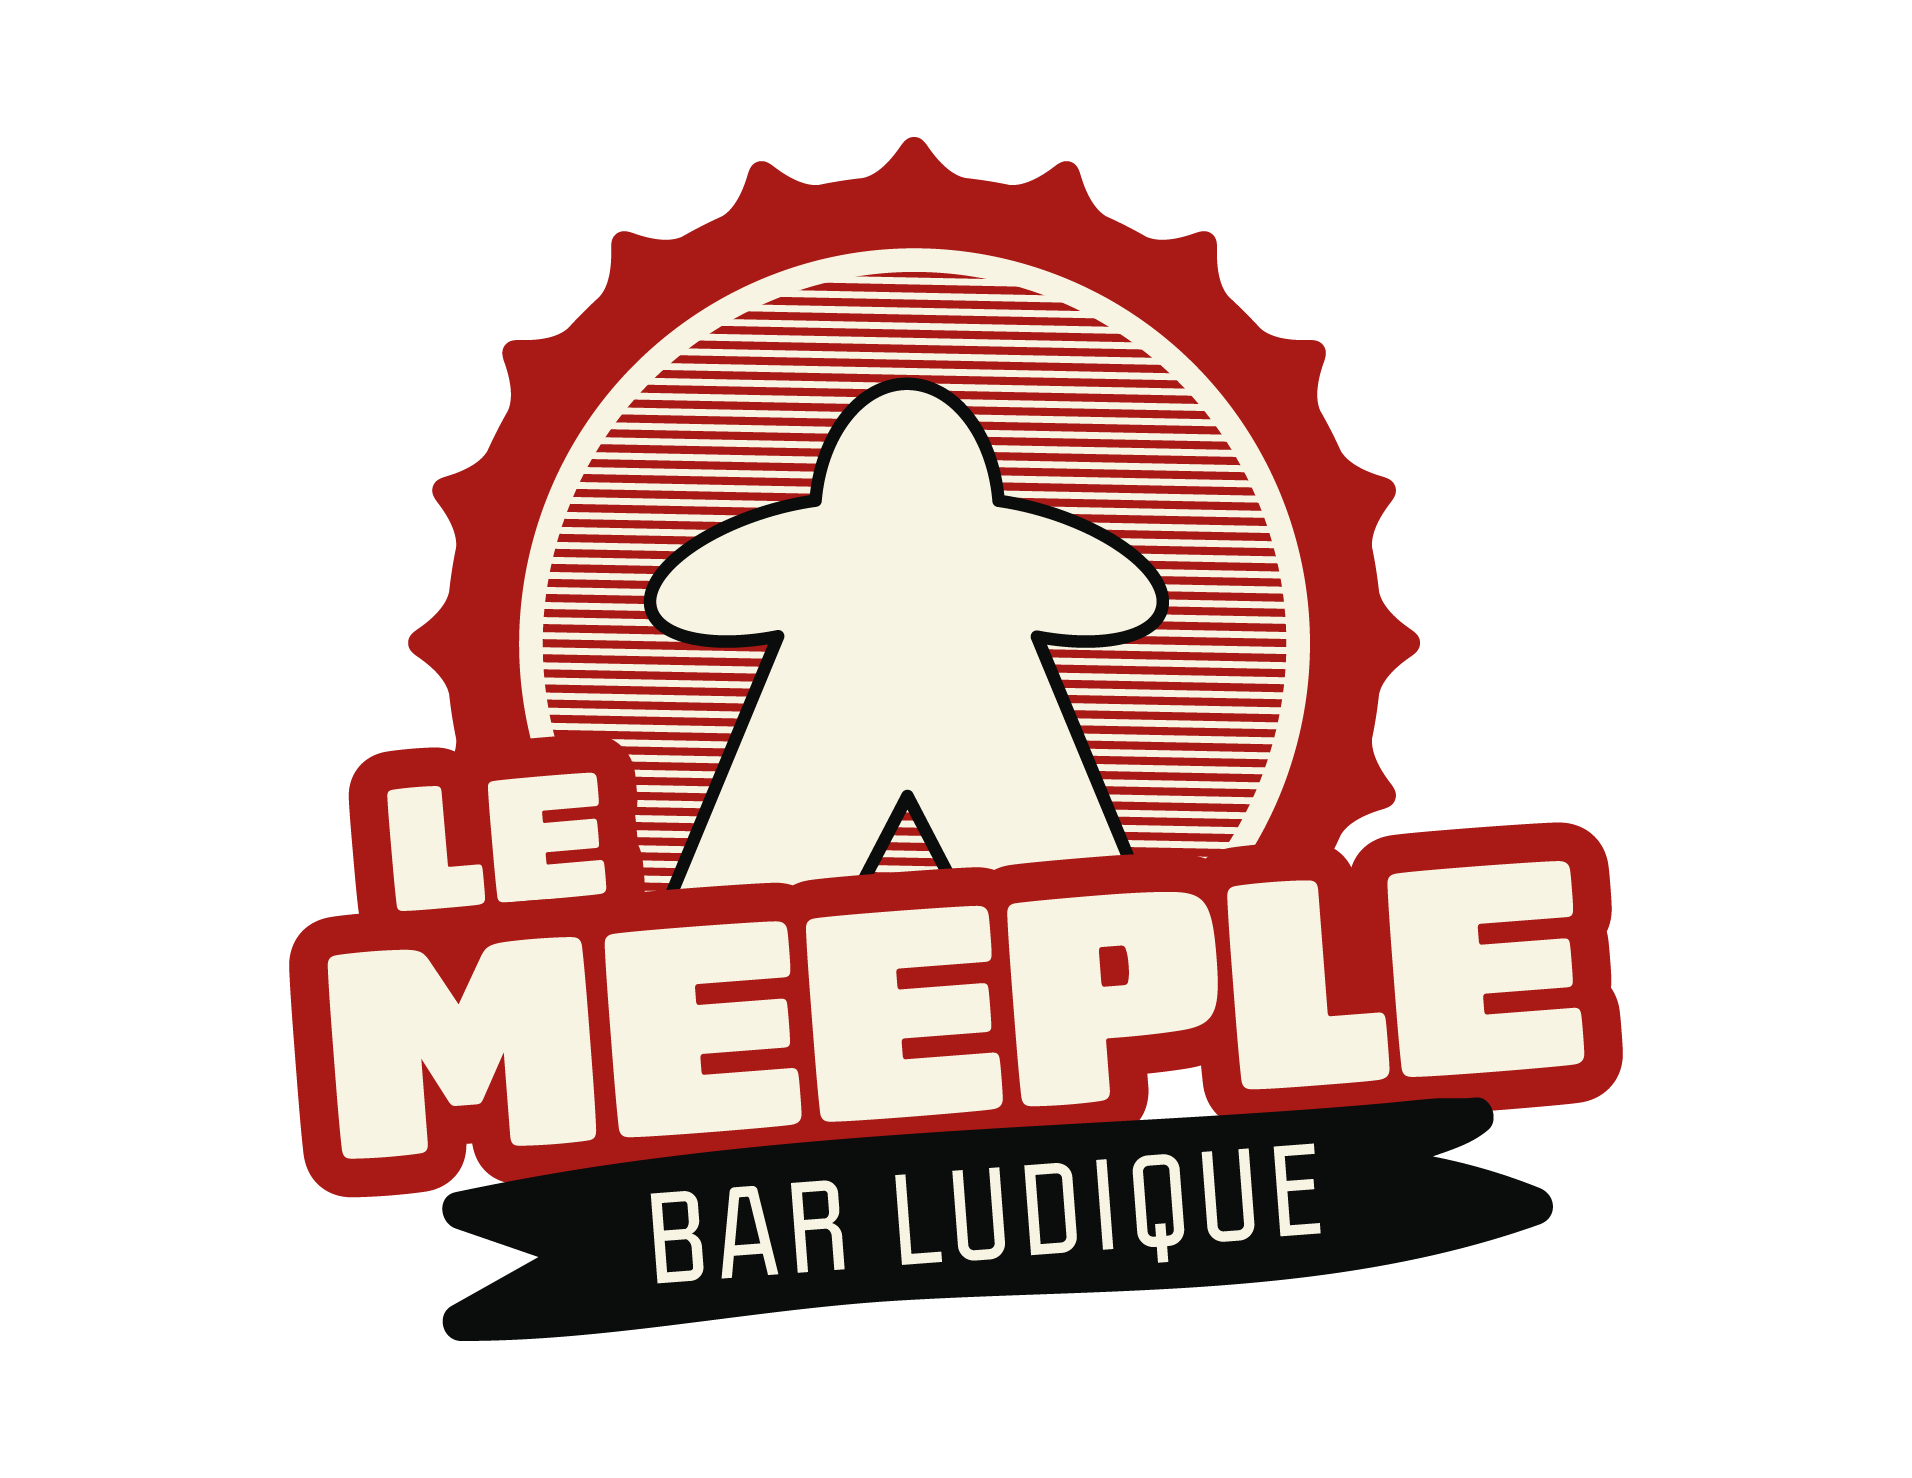 Le Meeple - Bar ludique